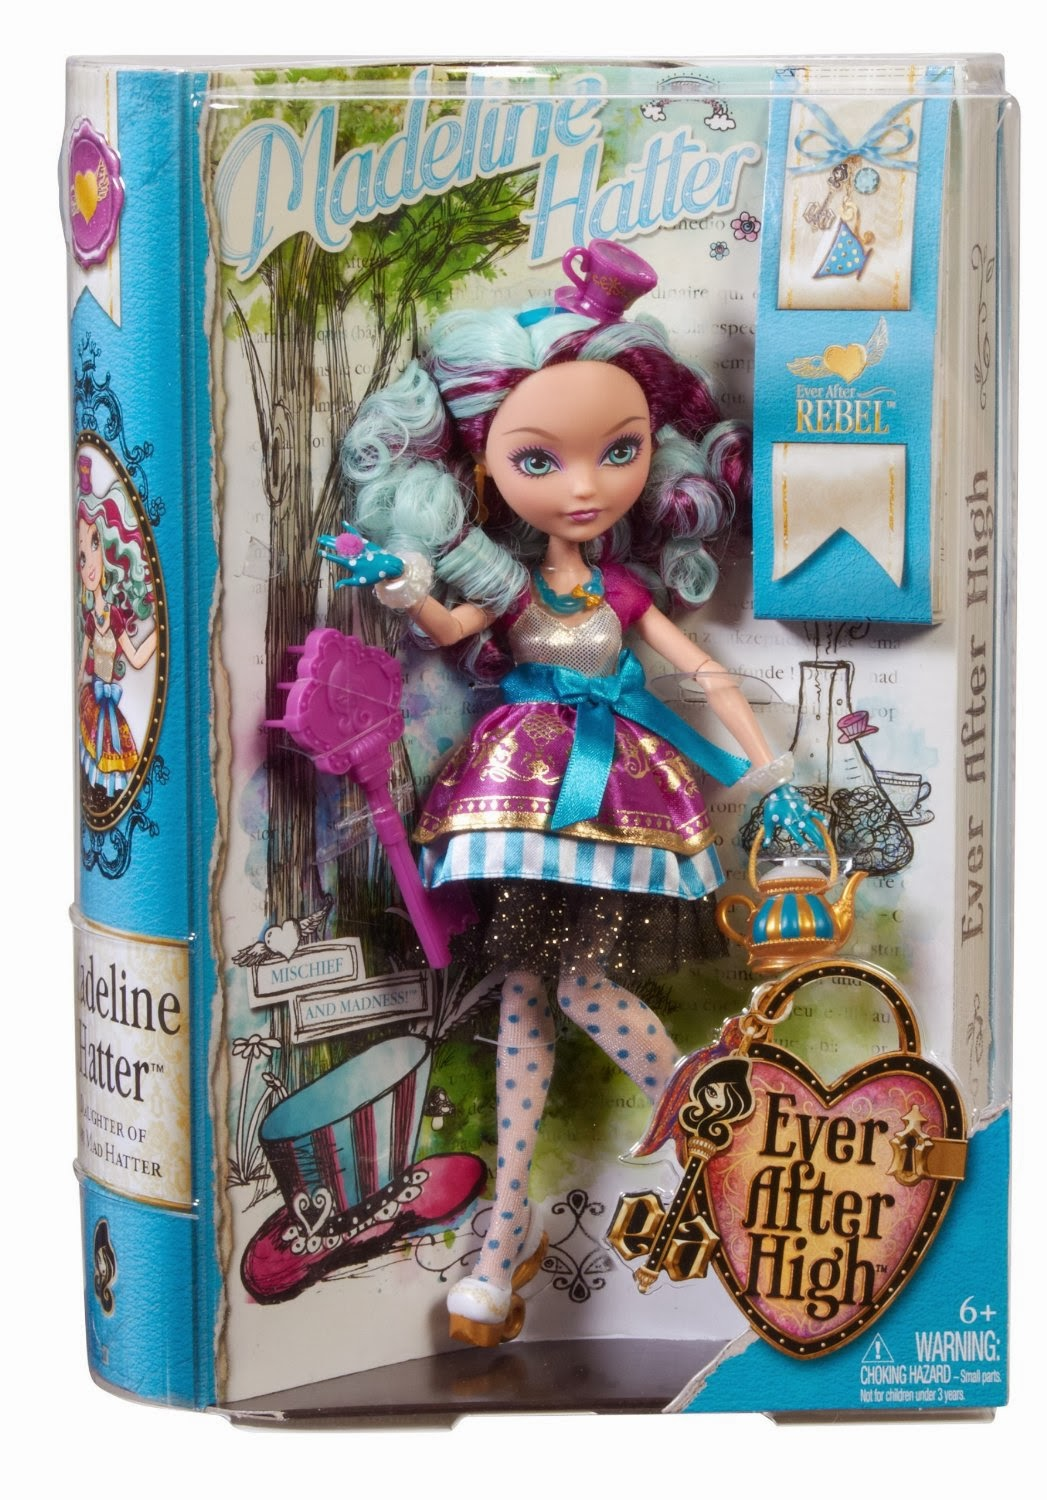 TOYS: Madeline Hatter : Ever After High | DOLL | MUÑECA | Nueva | Bran New